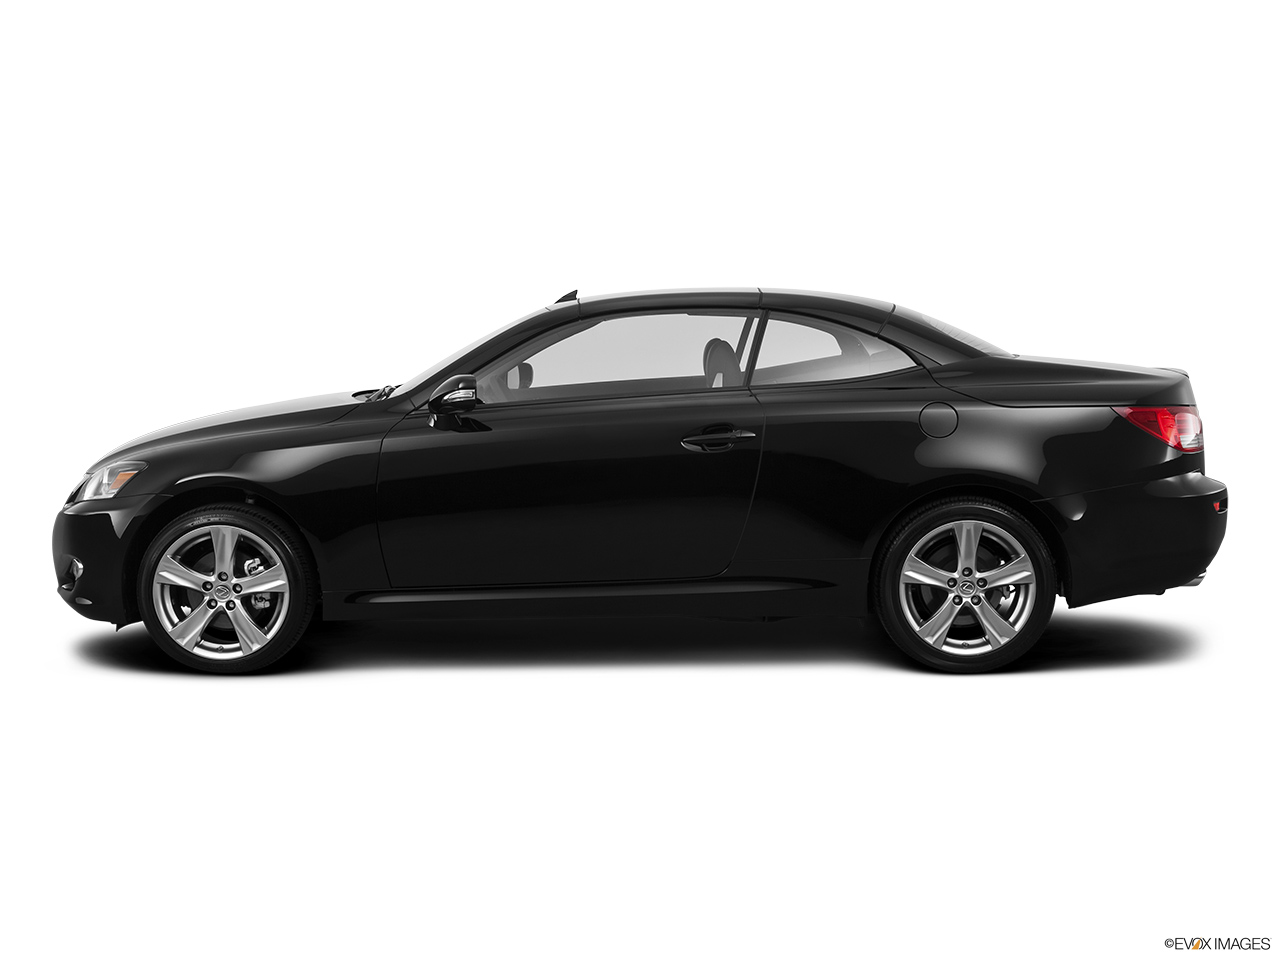 2013 Lexus IS 250C IS 250 C RWD Drivers side profile, convertible top up (convertibles only).